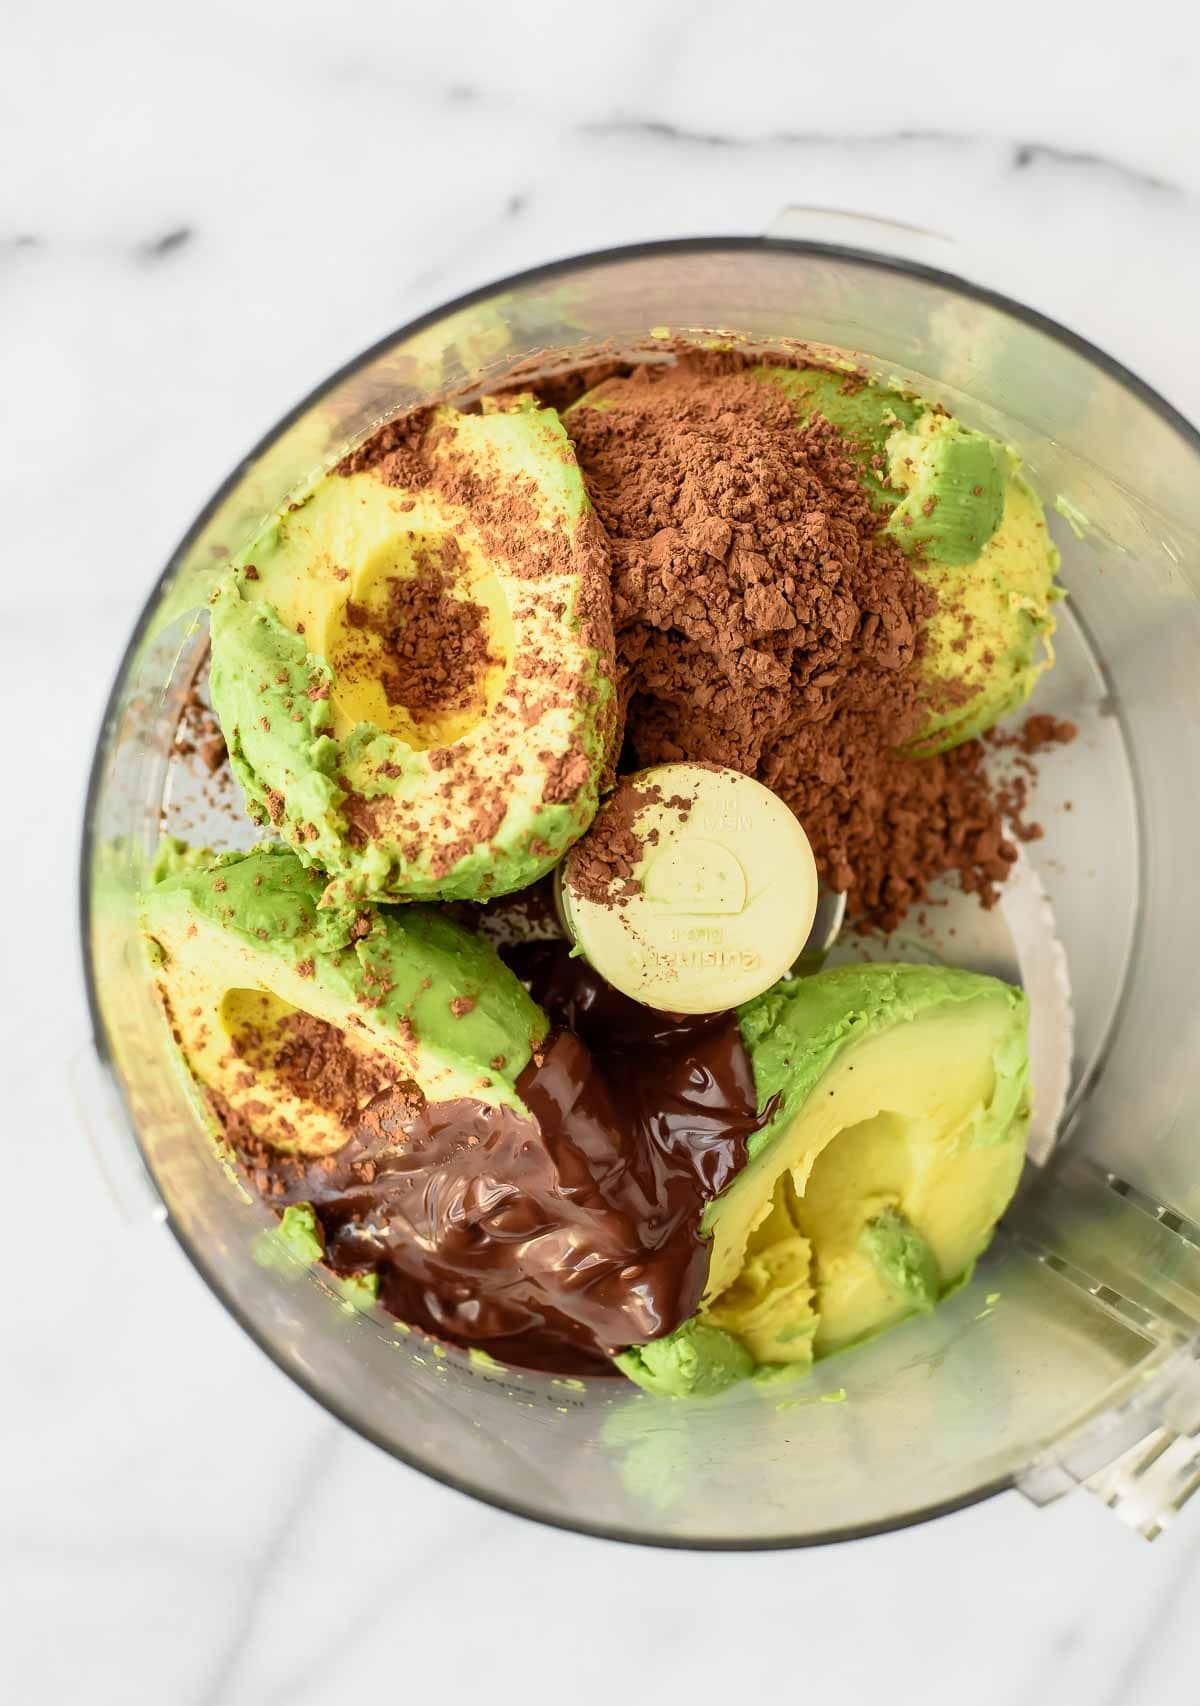 Avocado Chocolate Mousse